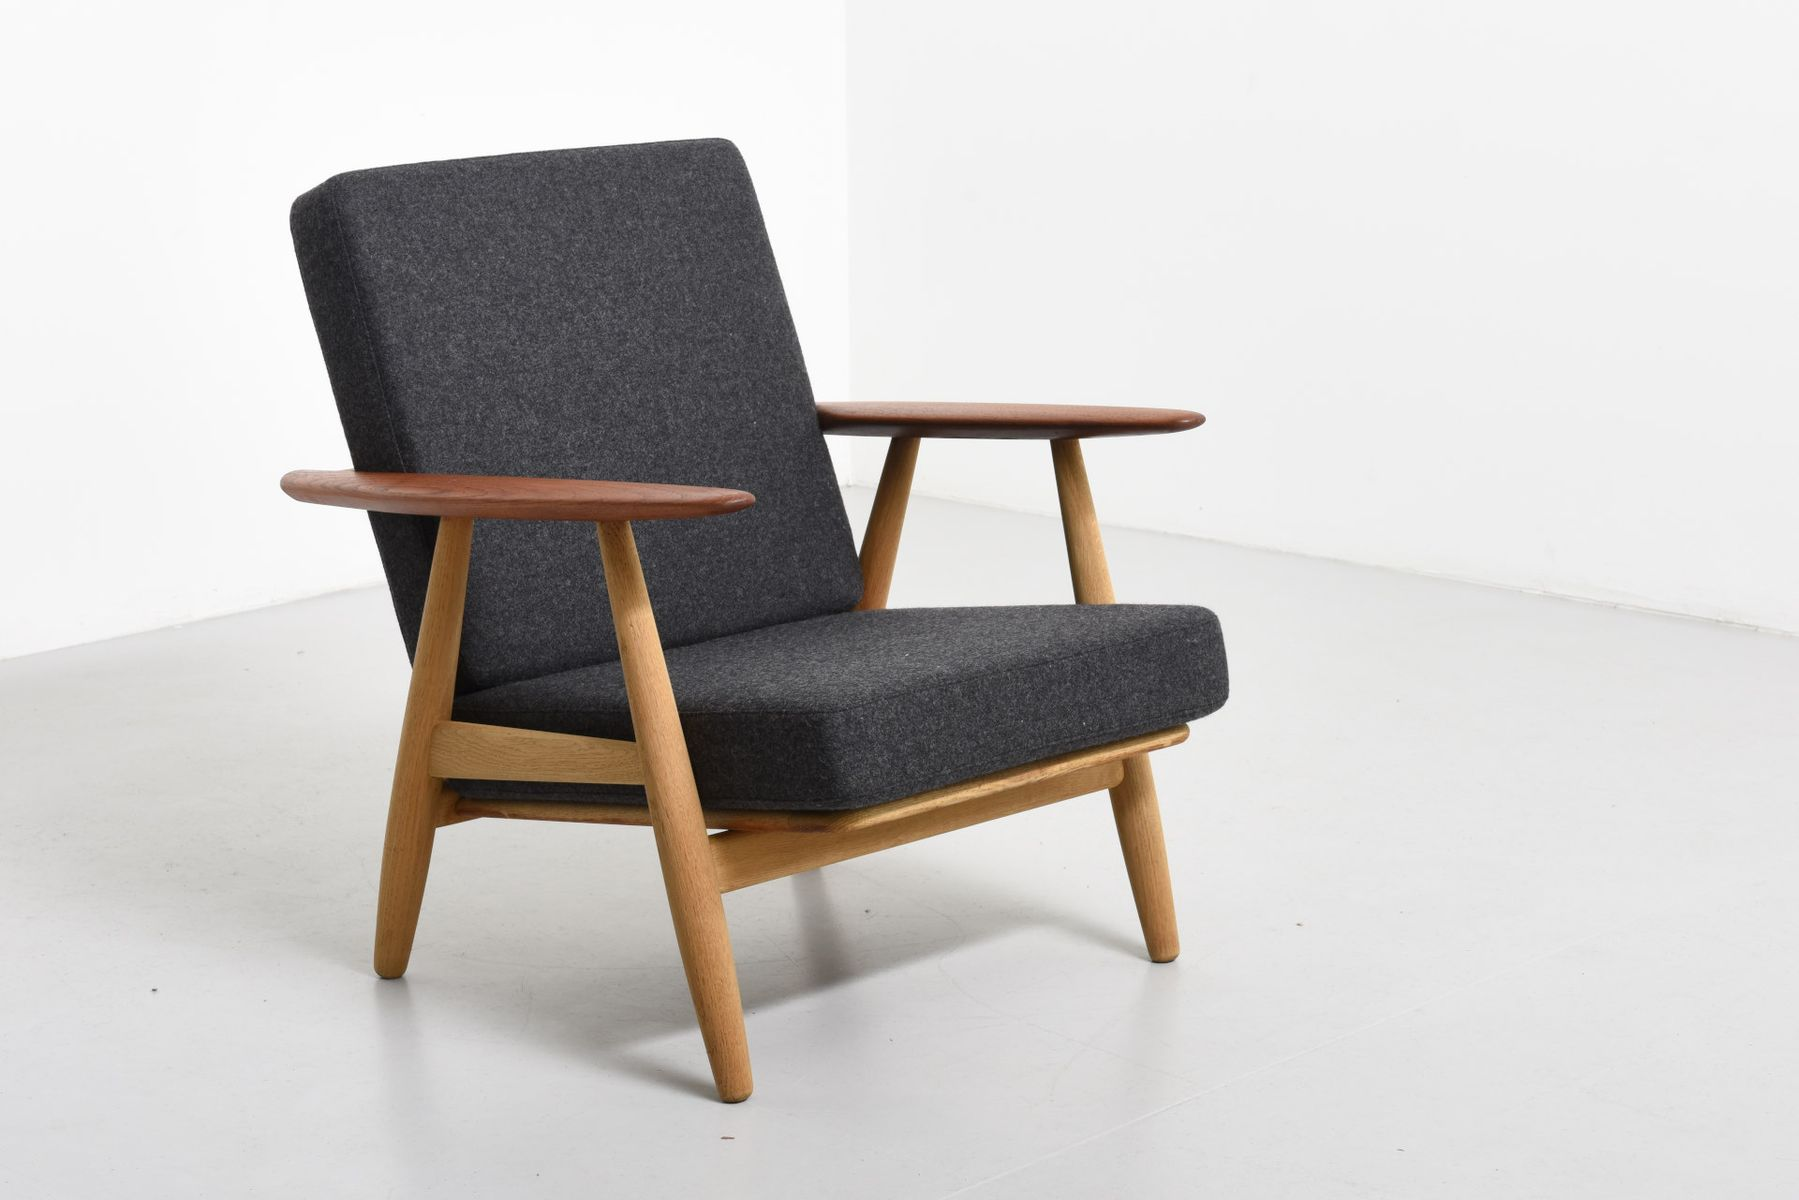 Oak u0026 Teak Cigar Chair by Hans J. Wegner for Getama for sale at Pamono